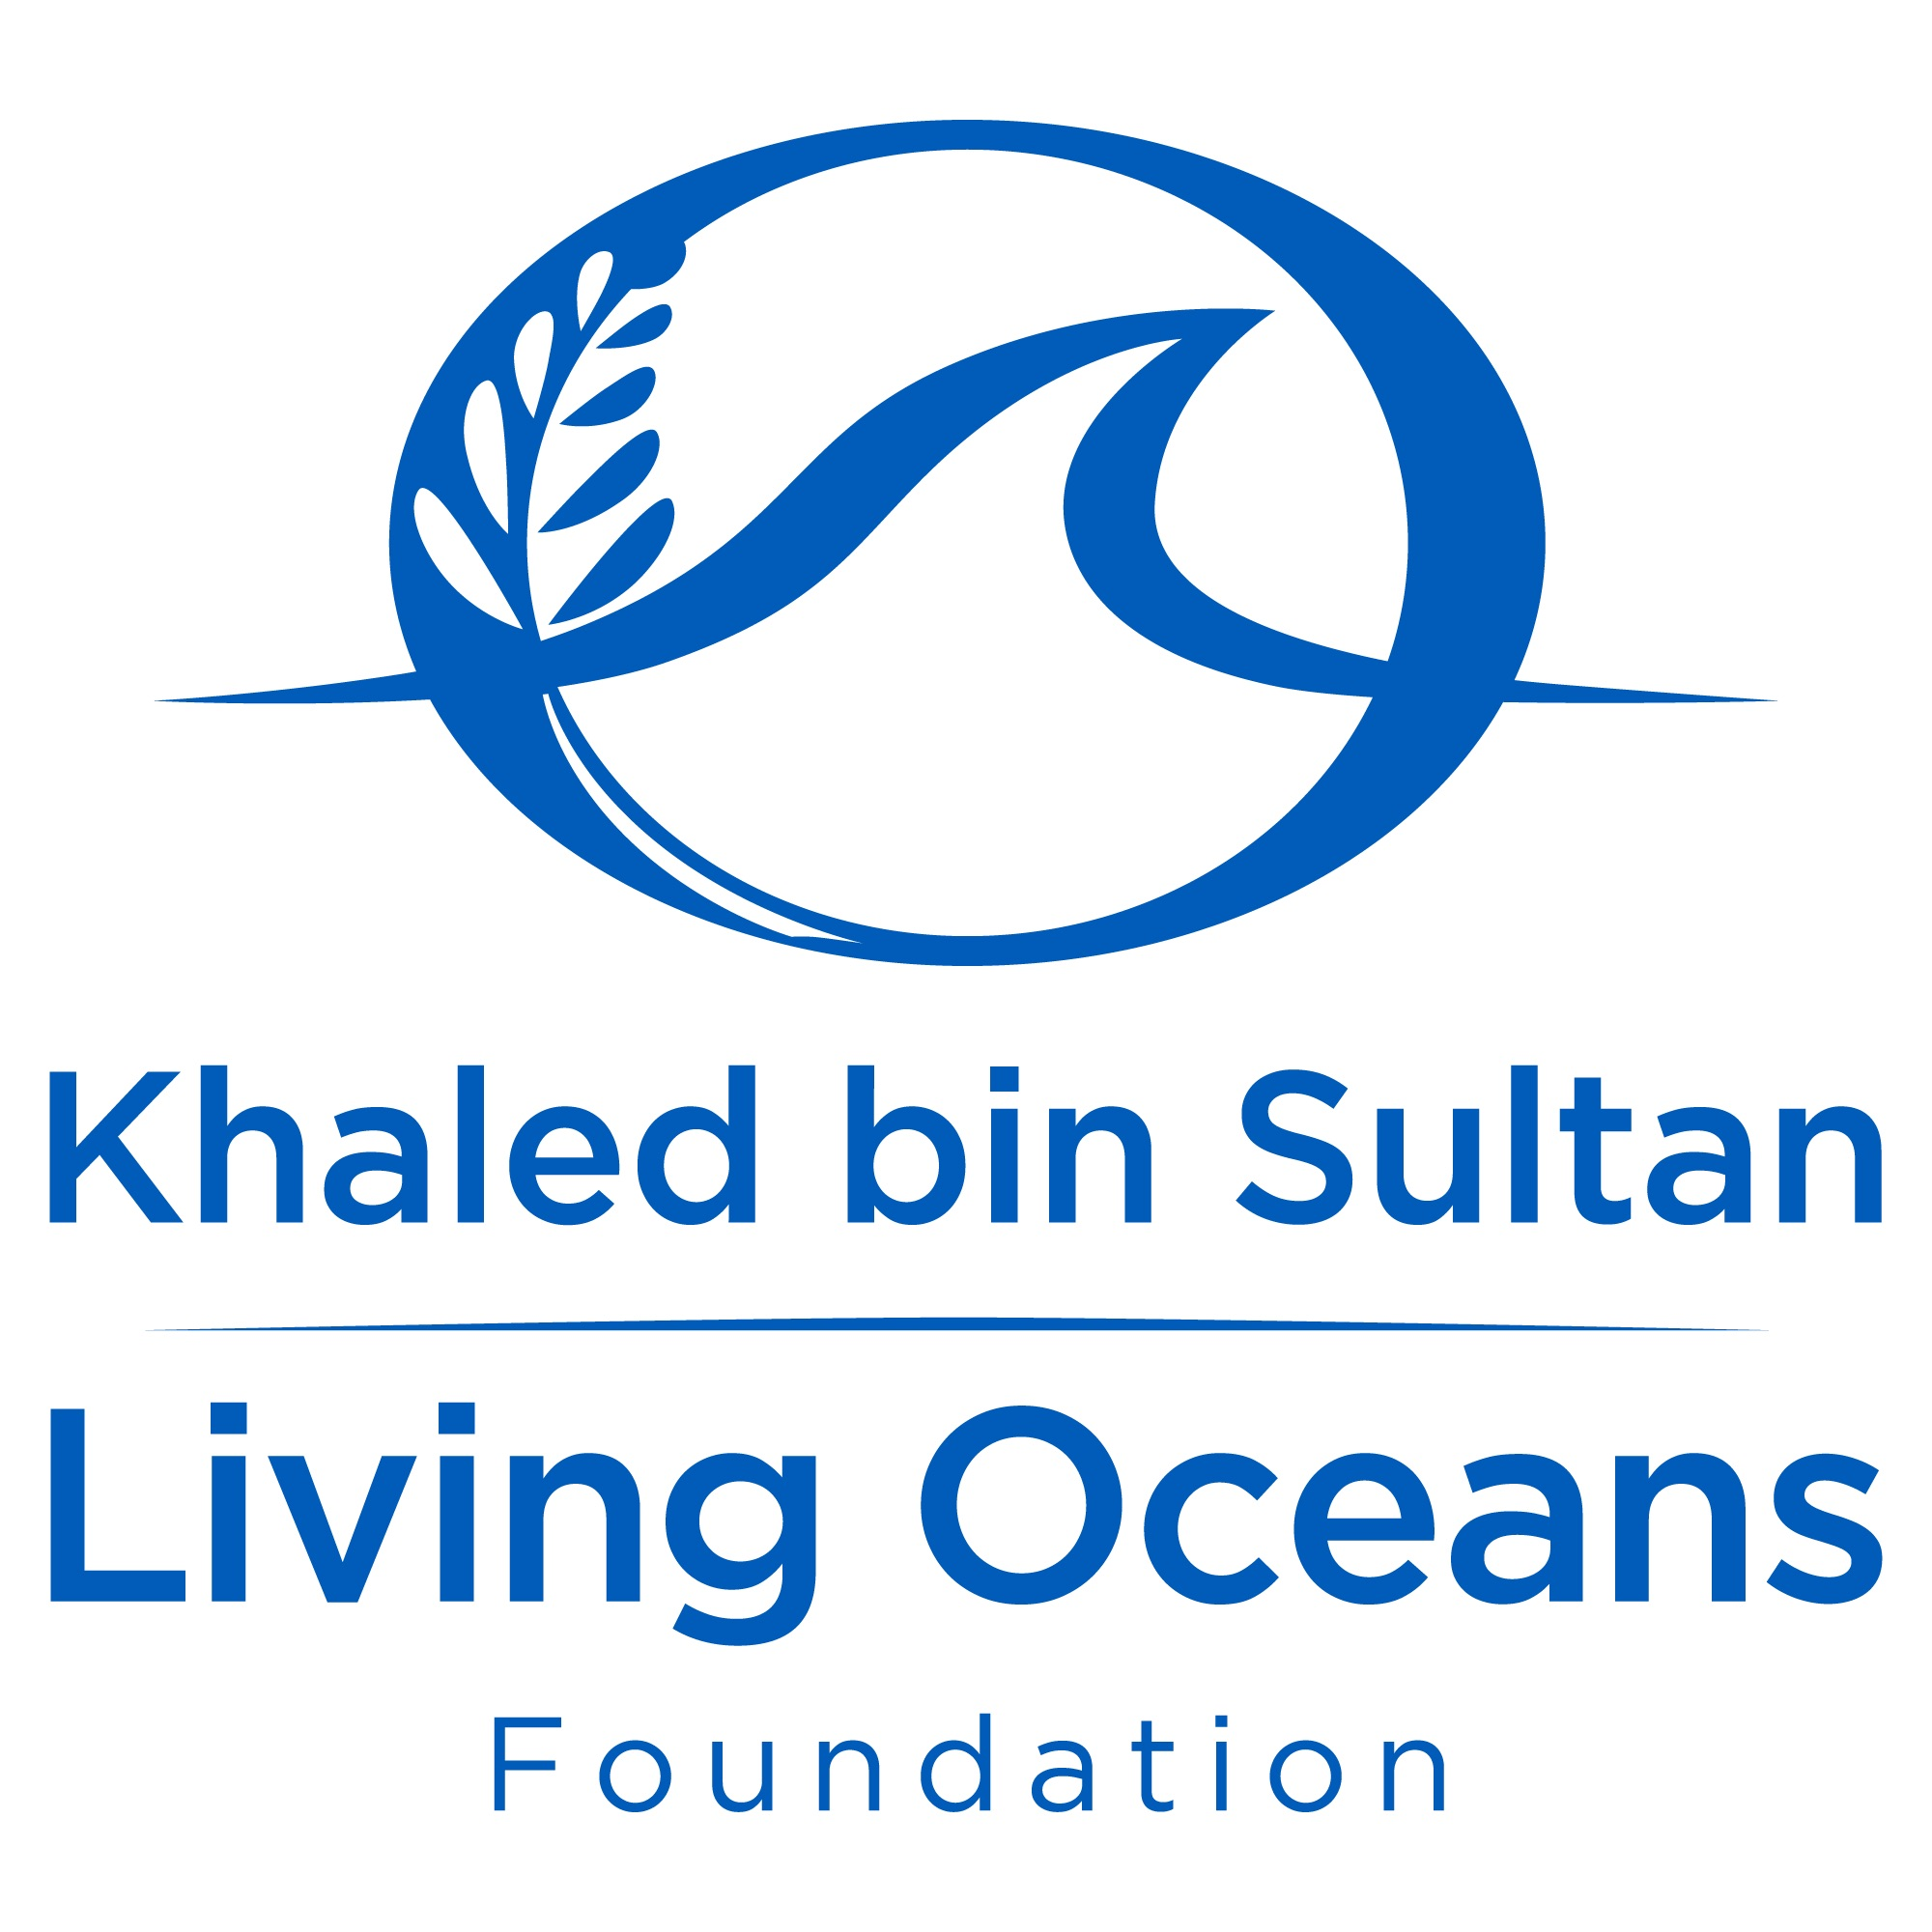 Khaled bin Sultan Living Oceans Foundation